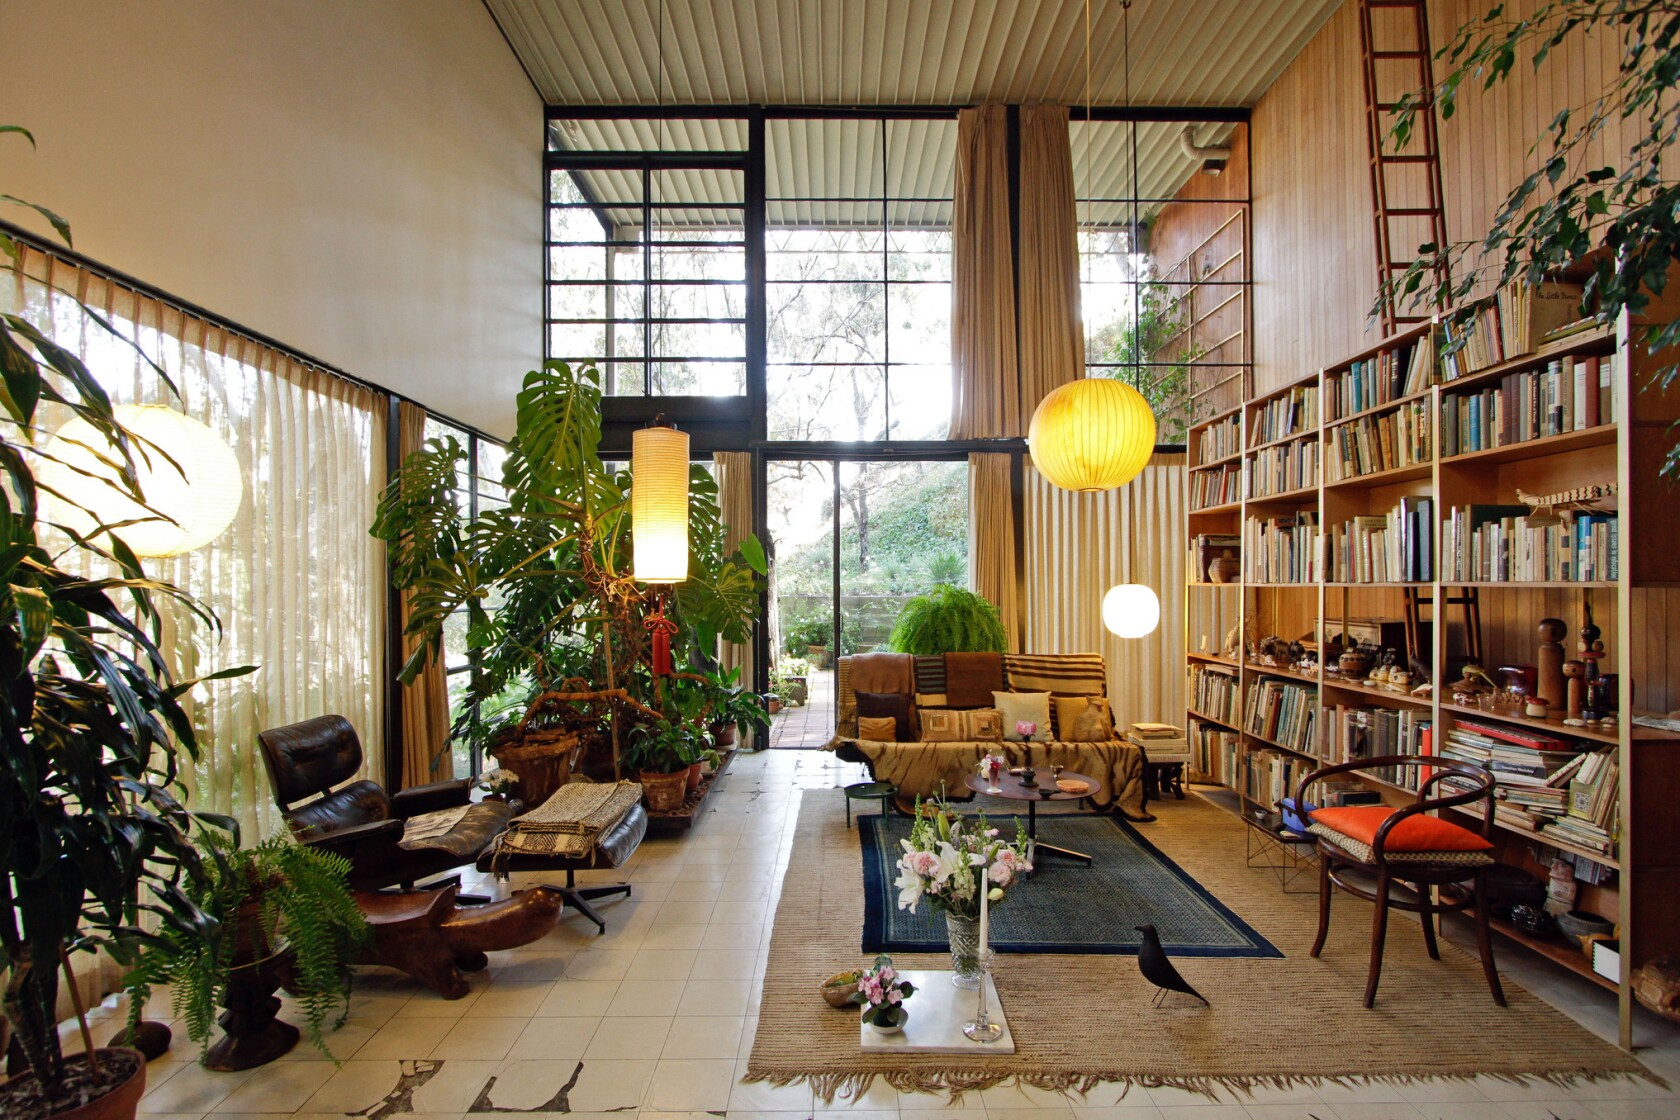 Case study conservation on the Eames' Case Study House - Los ...